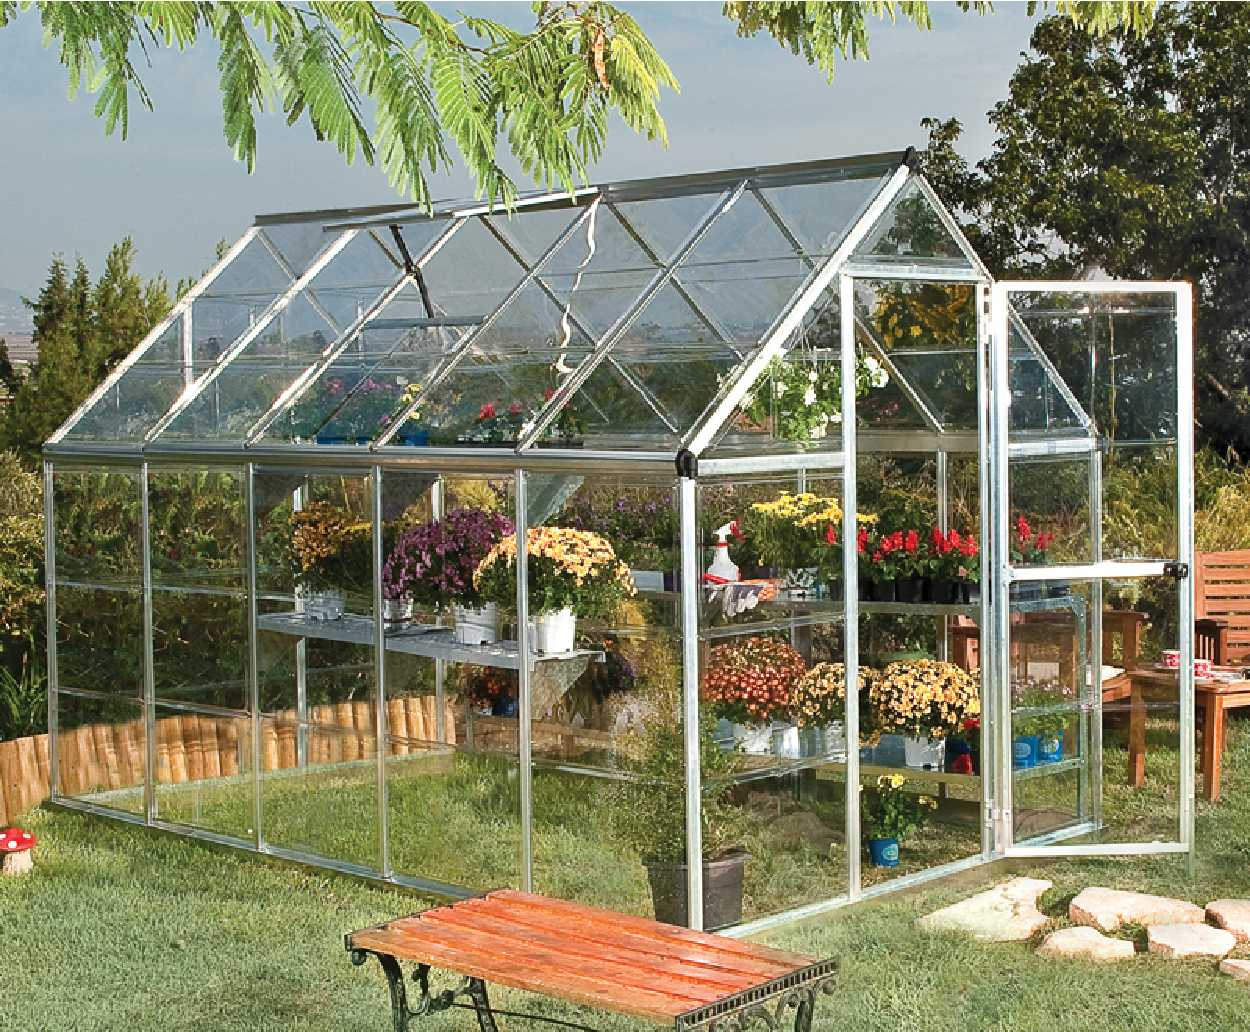 Greenhouses and greenhouse frames